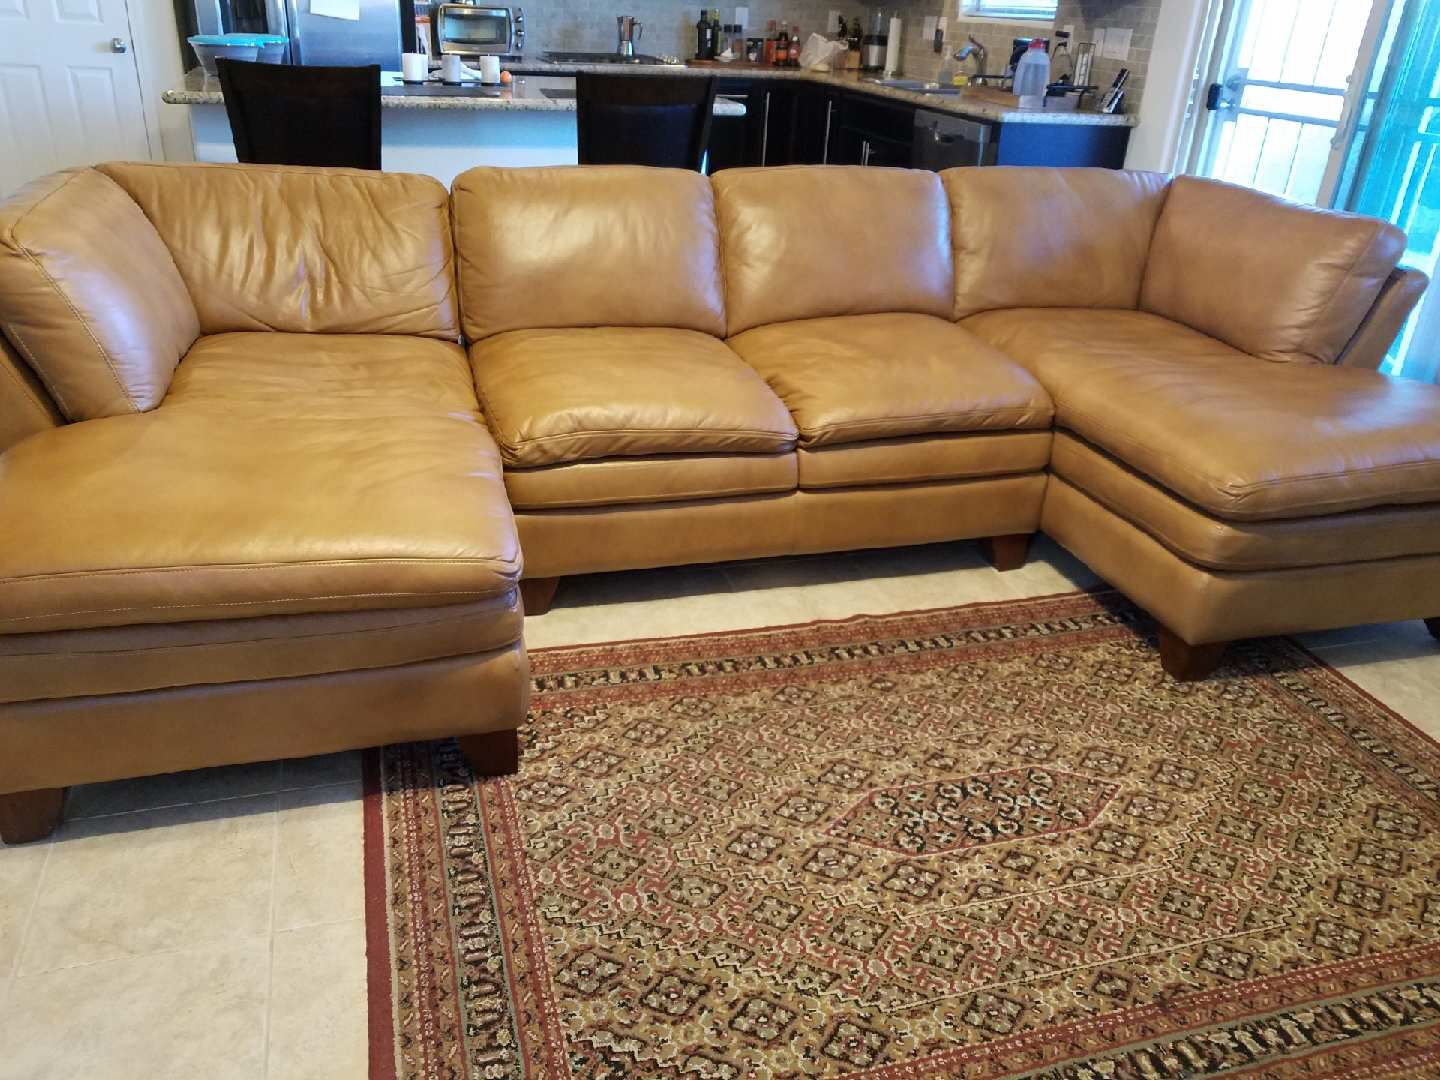 Great 100% leather couch, your house needs it